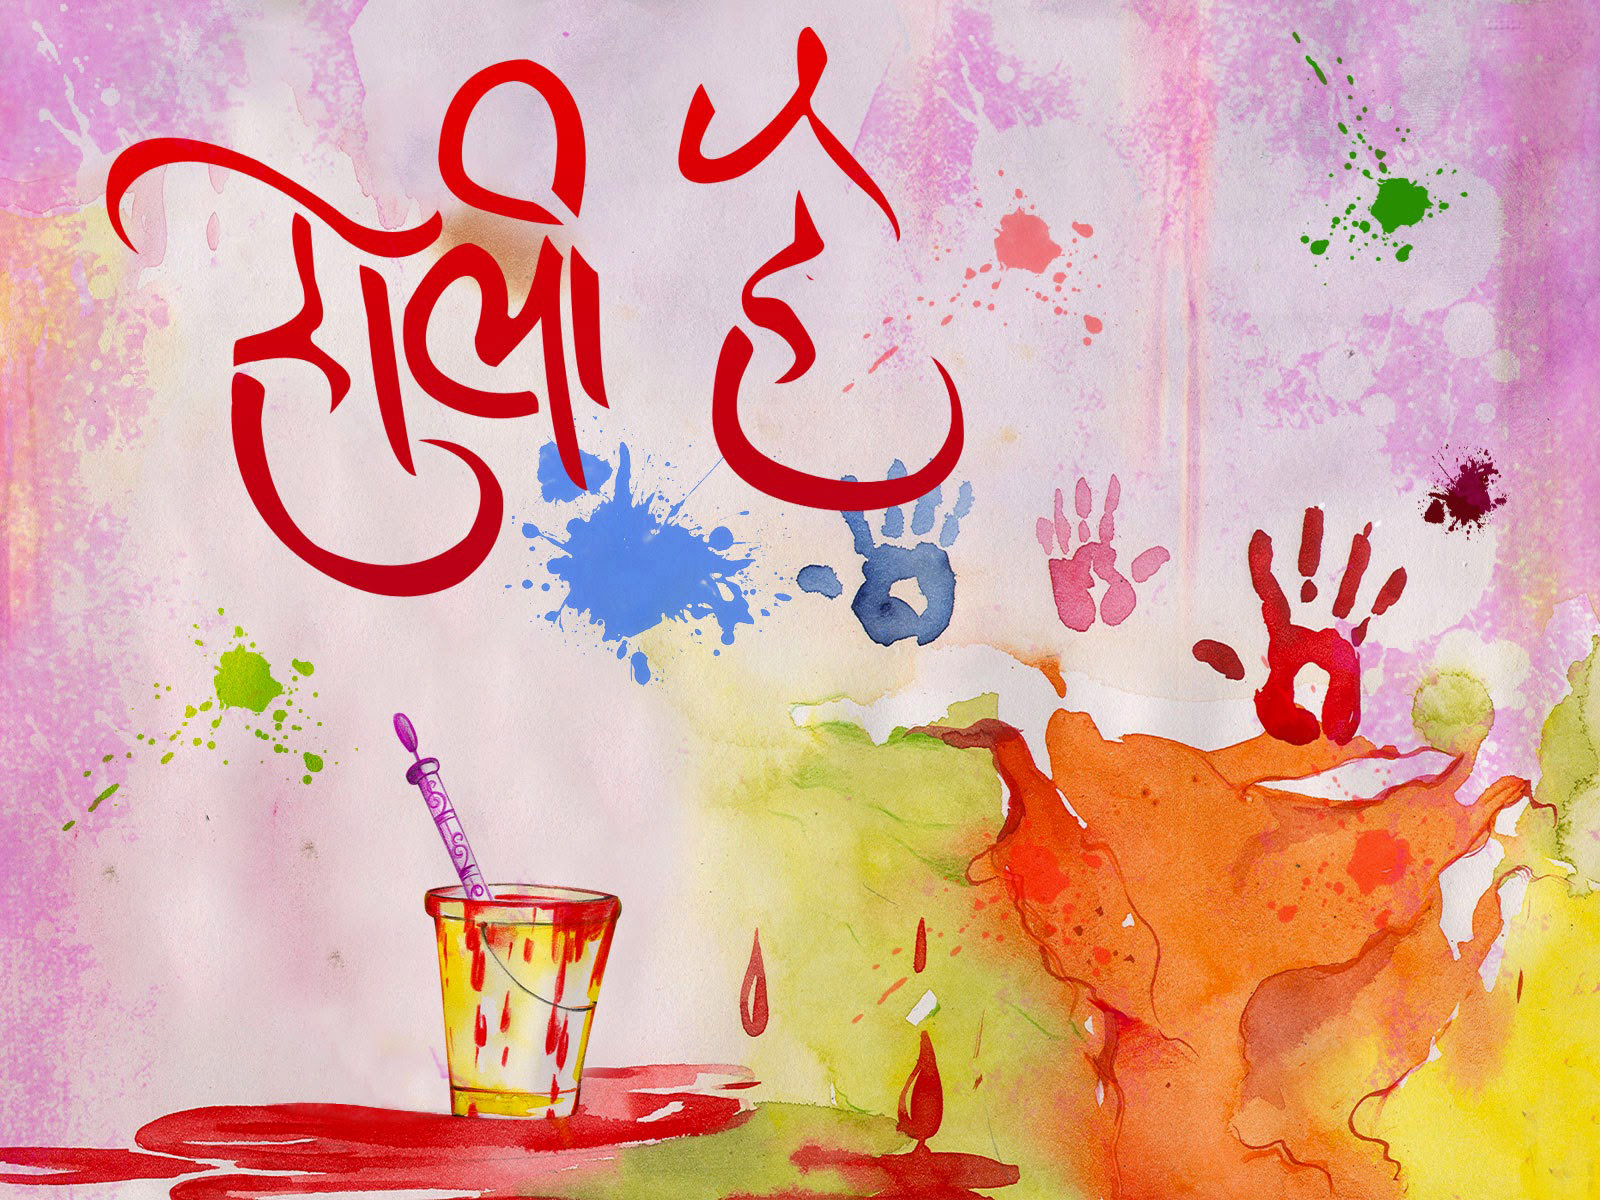 Holi Wallpapers Holi HD Wallpapers   Download Holi Wallpaper 1600x1200